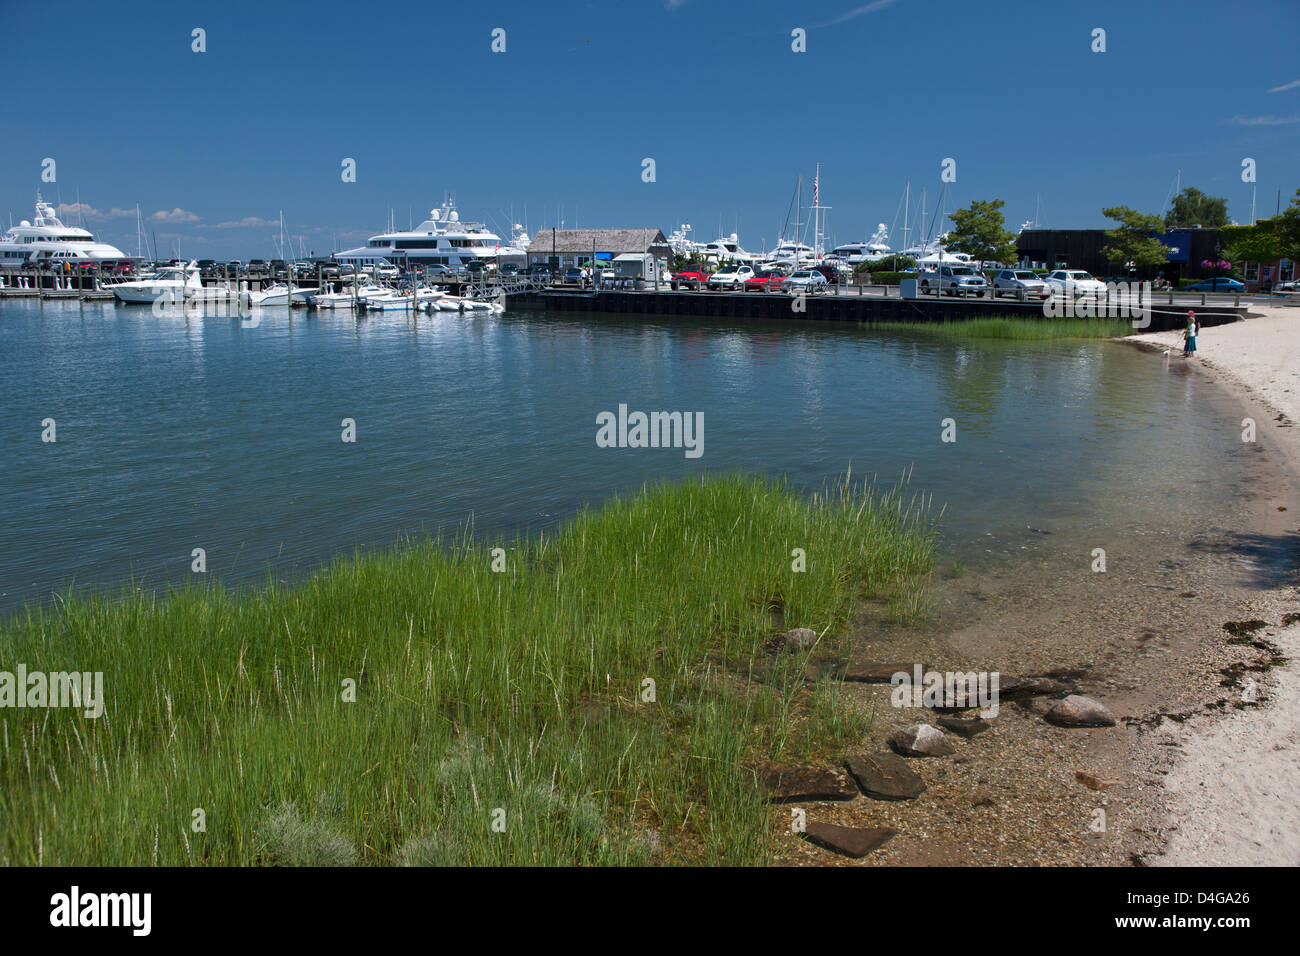 strand in sag harbor suffolk county long island new york state usa stockfoto bild 54448862 alamy. Black Bedroom Furniture Sets. Home Design Ideas